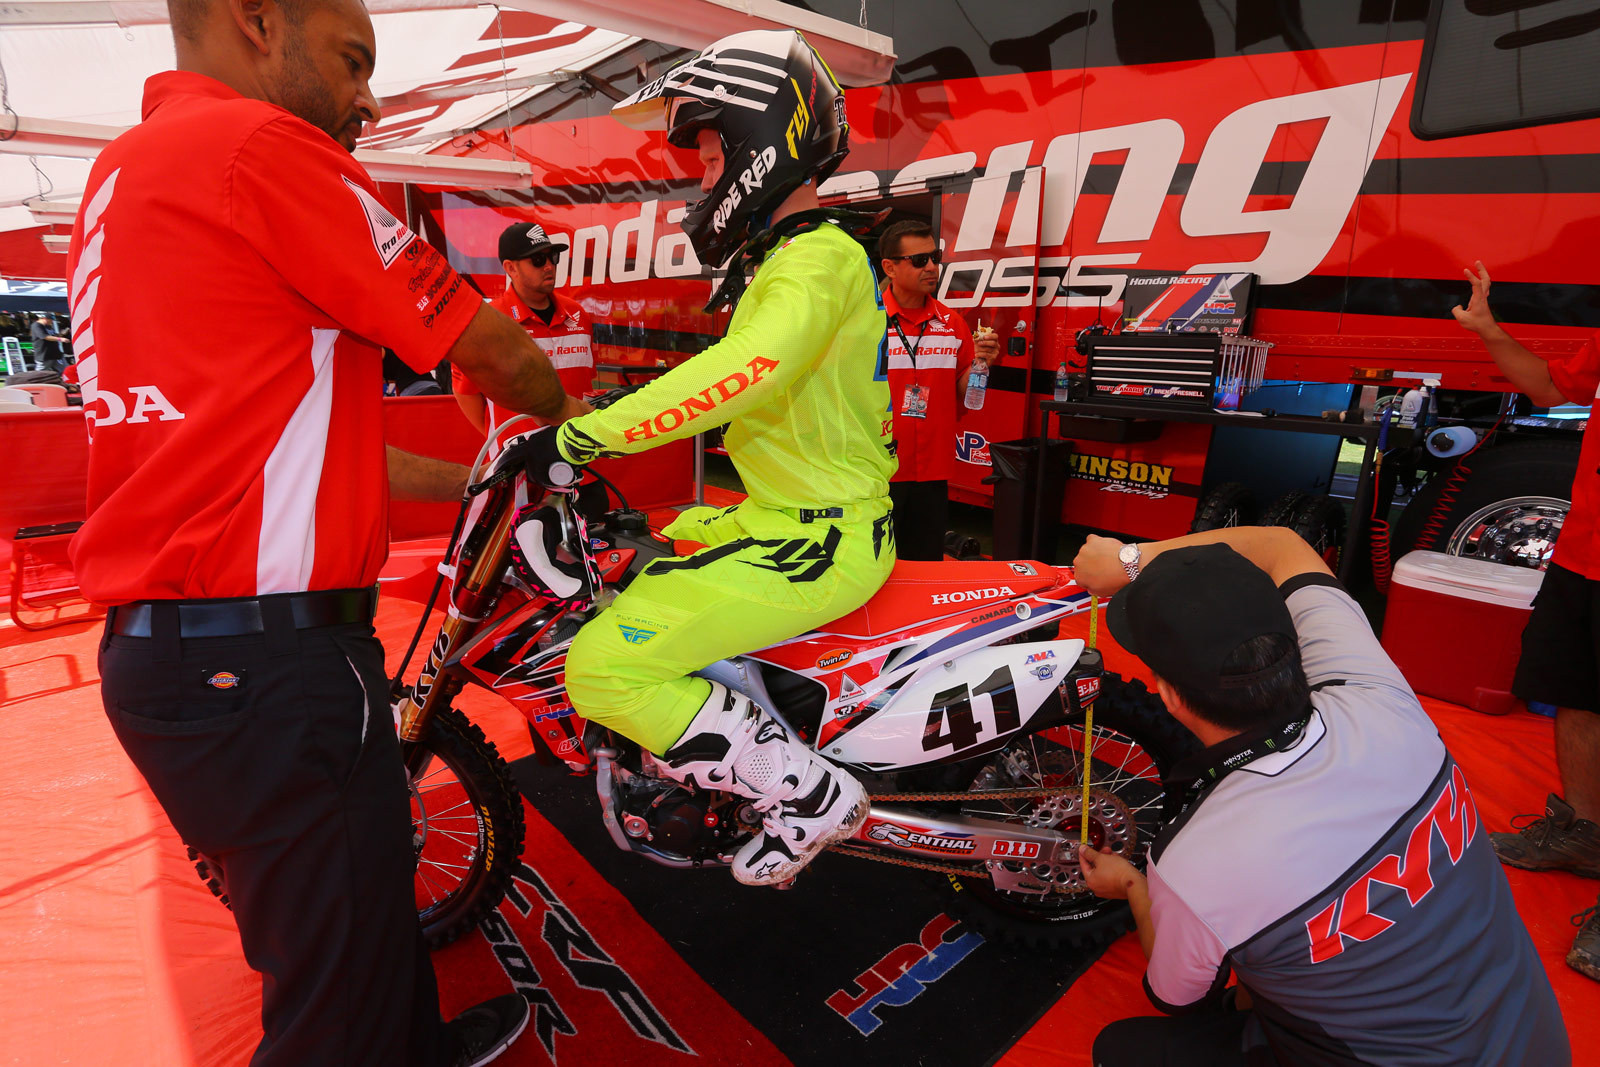 Trey Canard - Vital MX Pit Bits: Monster Energy Cup - Motocross Pictures - Vital MX